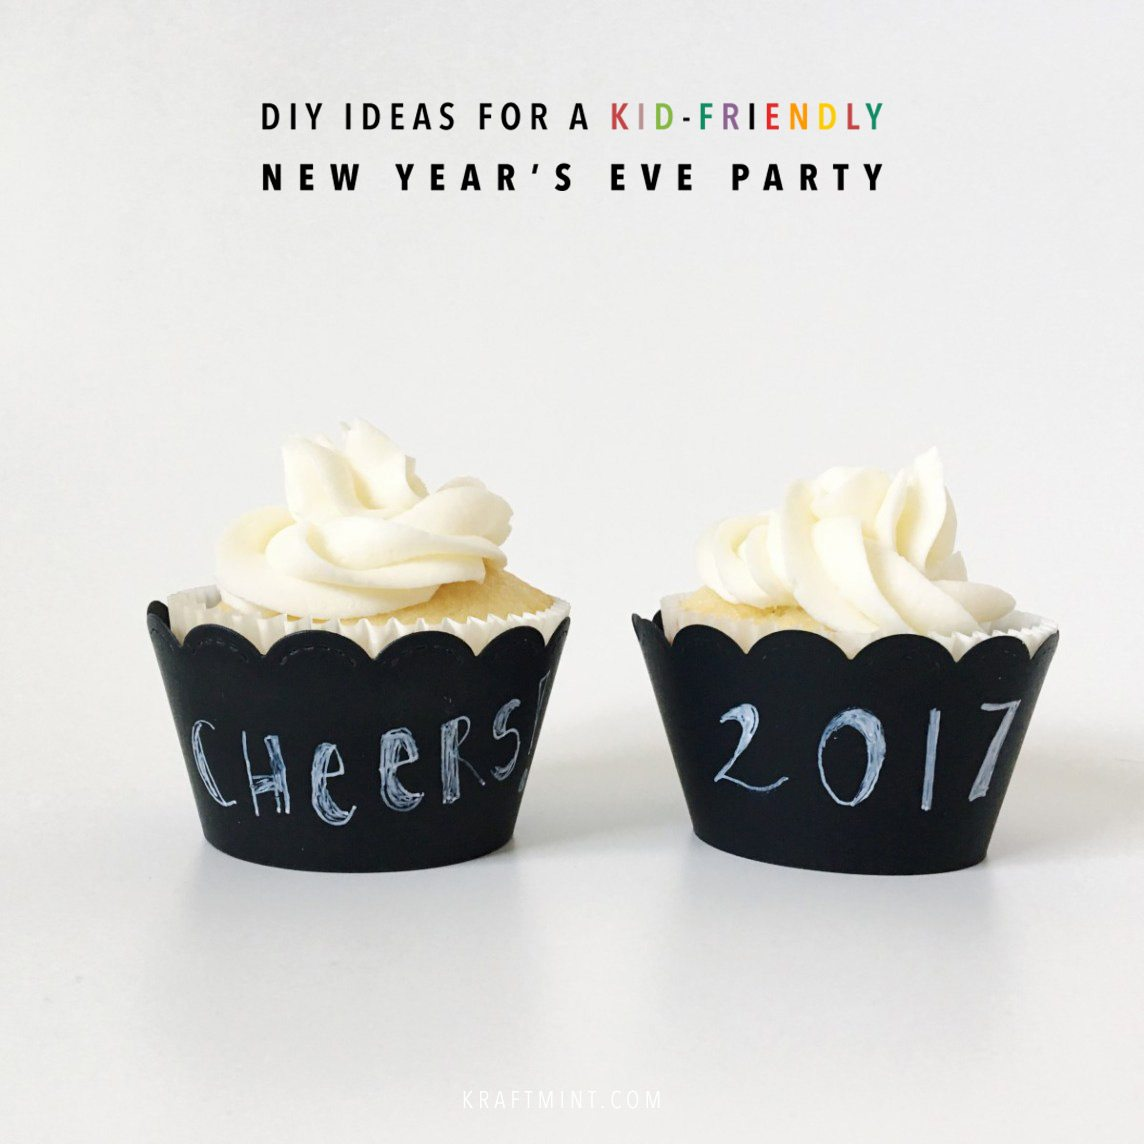 DIY Ideas for a kid-friendly New Year's Eve Party